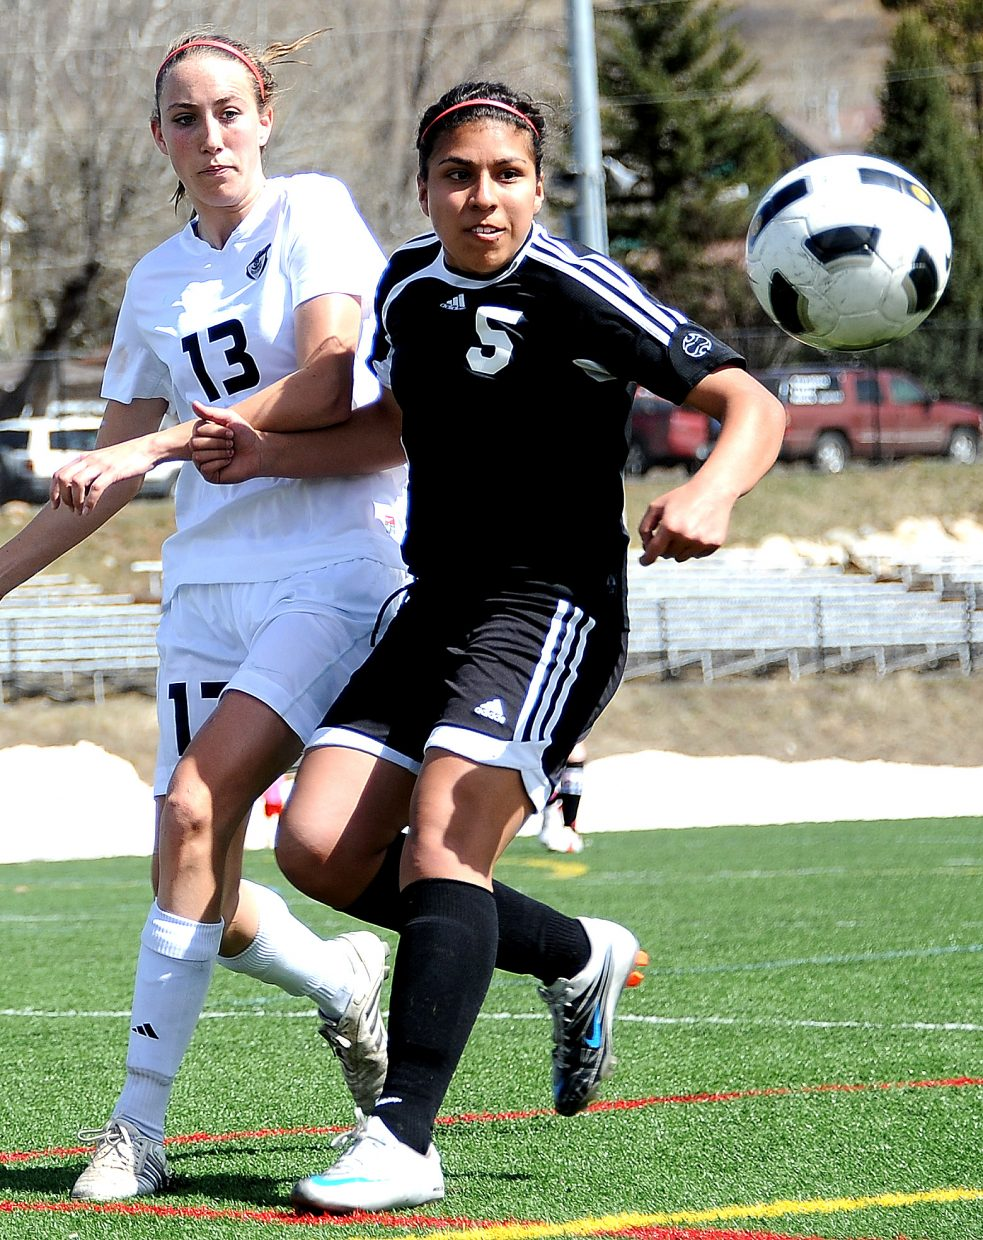 Eagle Valley's Blanca Mendez holds off Steamboat's Sydney Bauknecht on Saturday during a game in Steamboat. The Sailors won the matchup, 6-0.